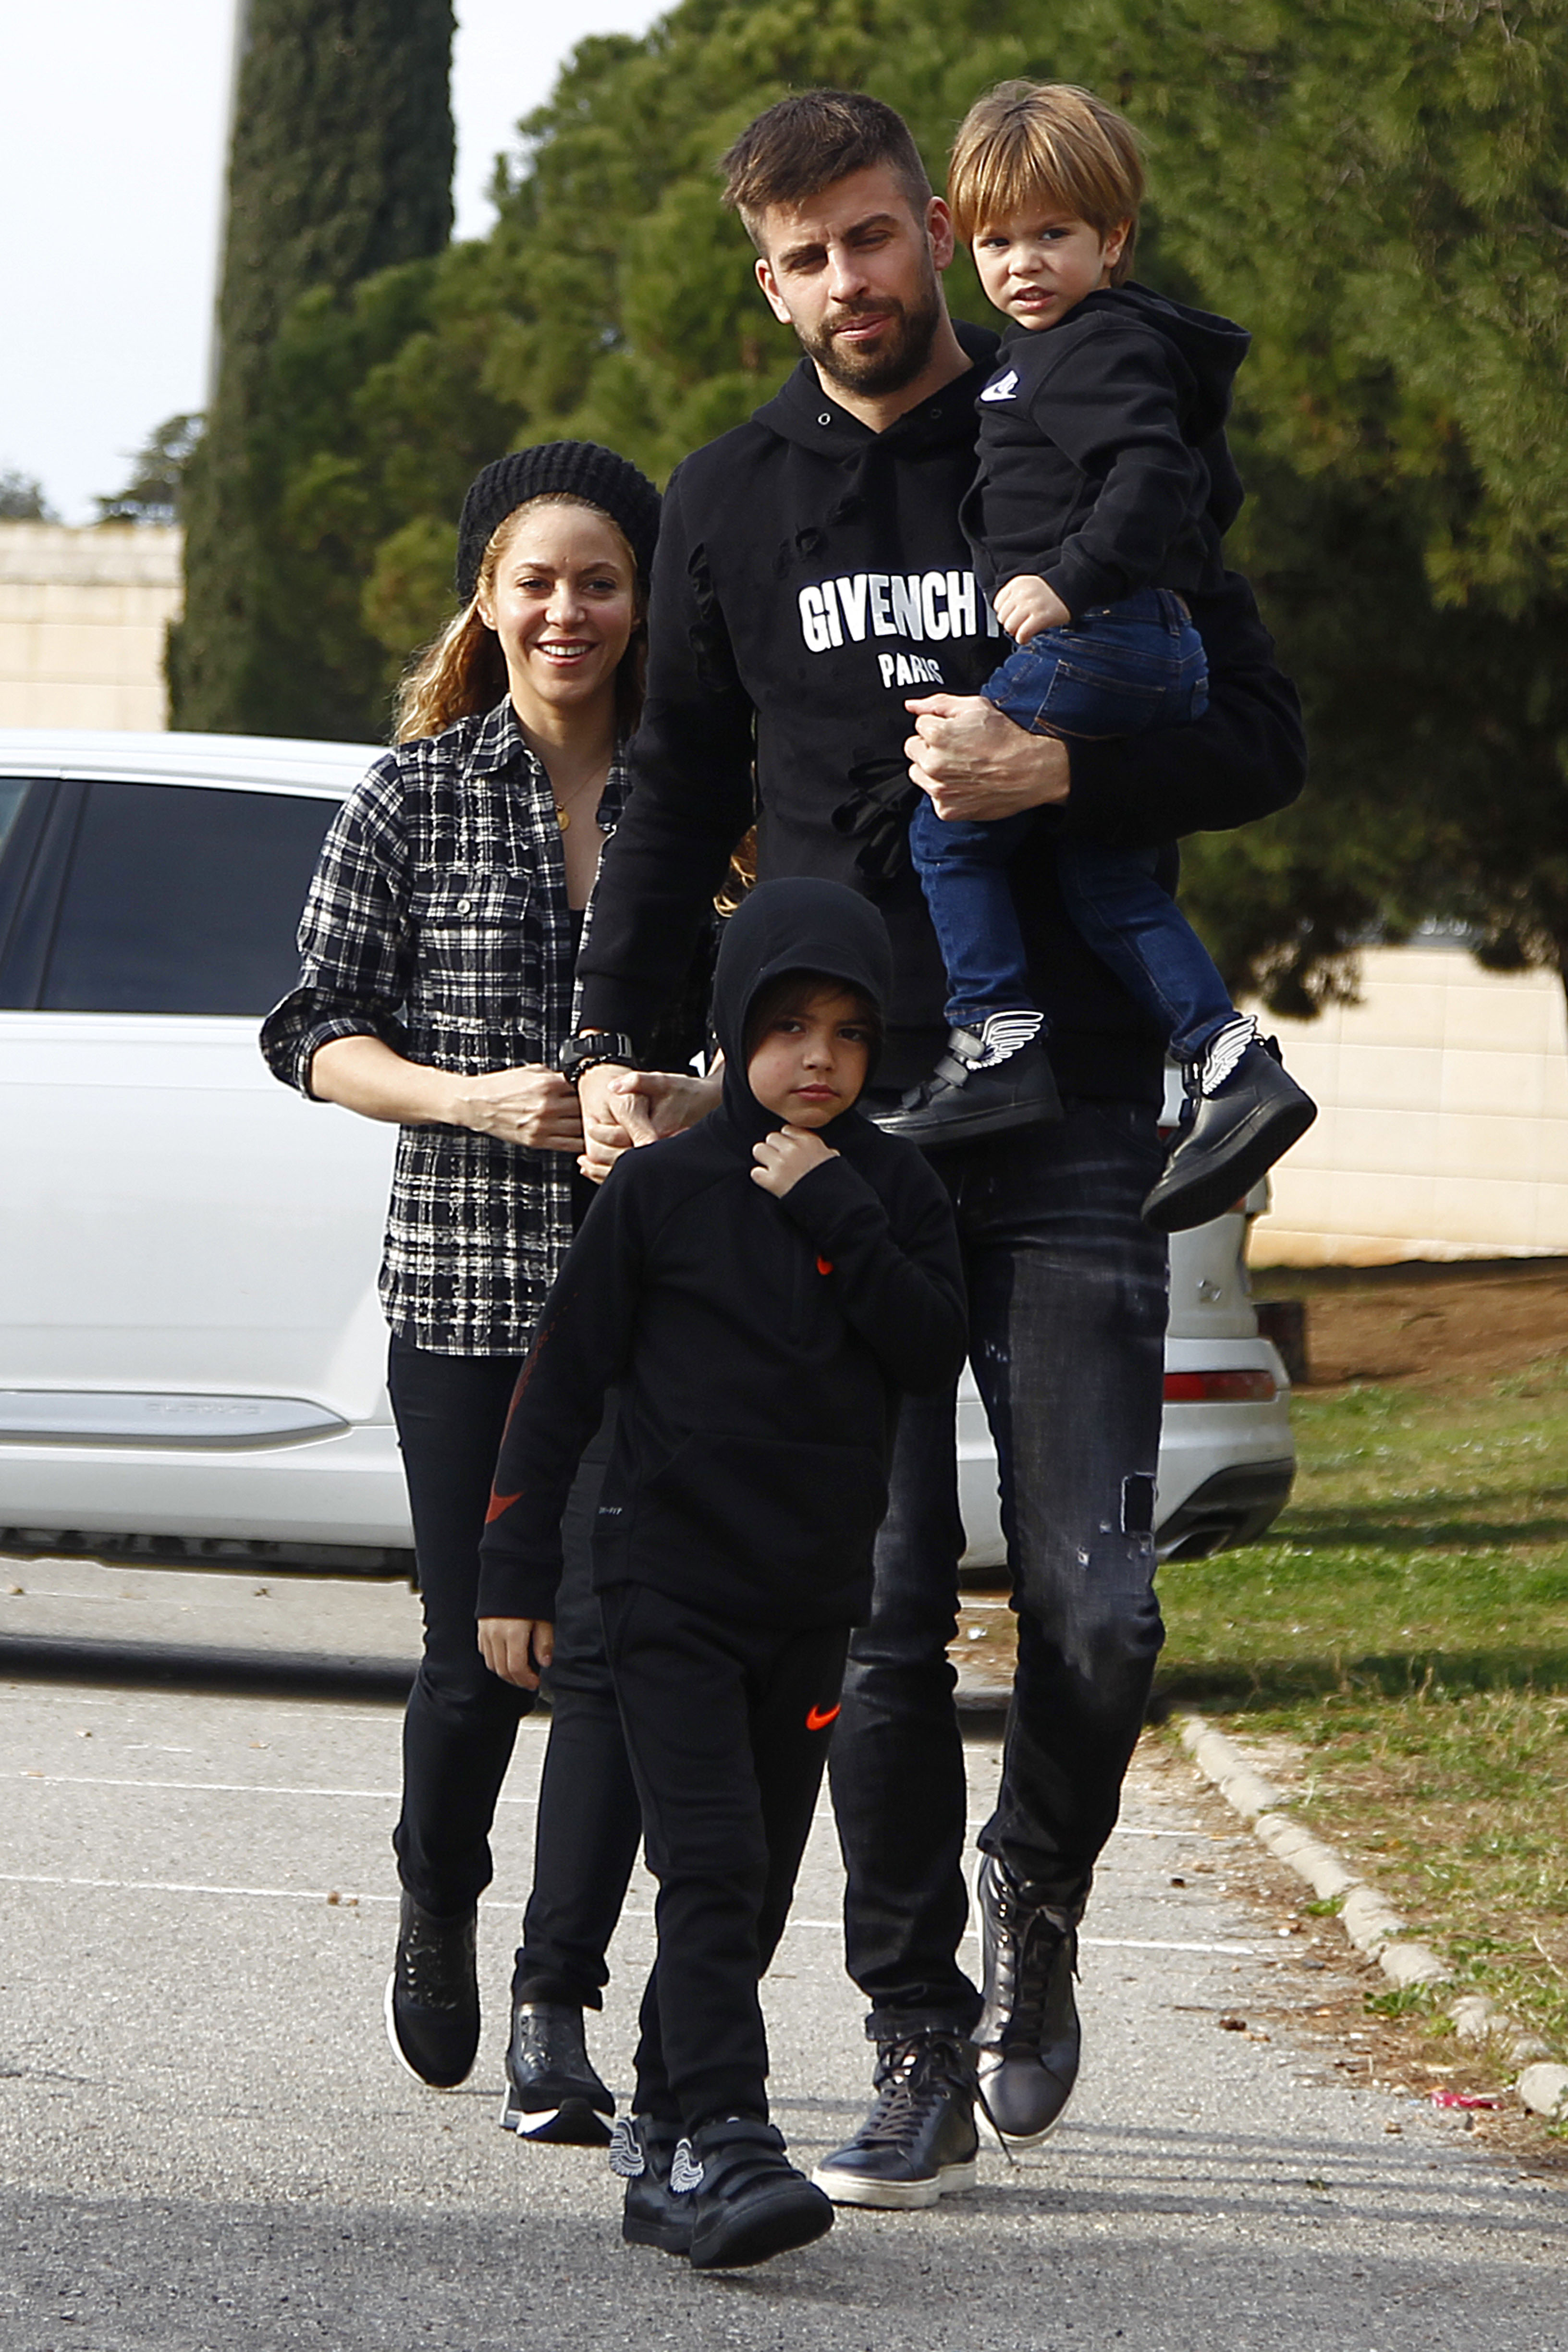 EXCLUSIVE: Shakira and partner Gerard Pique are seen with sons Milan and Sasha in Barcelona, Spain.  The couple looked loved-up after their relationship became the subject of rumours late last year. The happy family was heading to the Disney on Ice show at the Palau Sant Jordi in Barcelona. Shakira, 41, who battled a vocal chord haemorrhage towards the end of 2017, was all smiles. Barcelona FC star Pique, 31, wore a Givenchy hooded top while the kids were dressed in Nike and adidas Jeremy Scott trainers / sneakers.  <P> Pictured: Shakira, Gerard Pique, Sasha, Milan <B>Ref: SPL1661358  190218   EXCLUSIVE</B><BR/> Picture by: Santi Delgado / Splash News<BR/> </P><P> <B>Splash News and Pictures</B><BR/> Los Angeles:310-821-2666<BR/> New York:212-619-2666<BR/> London:870-934-2666<BR/> <span id=